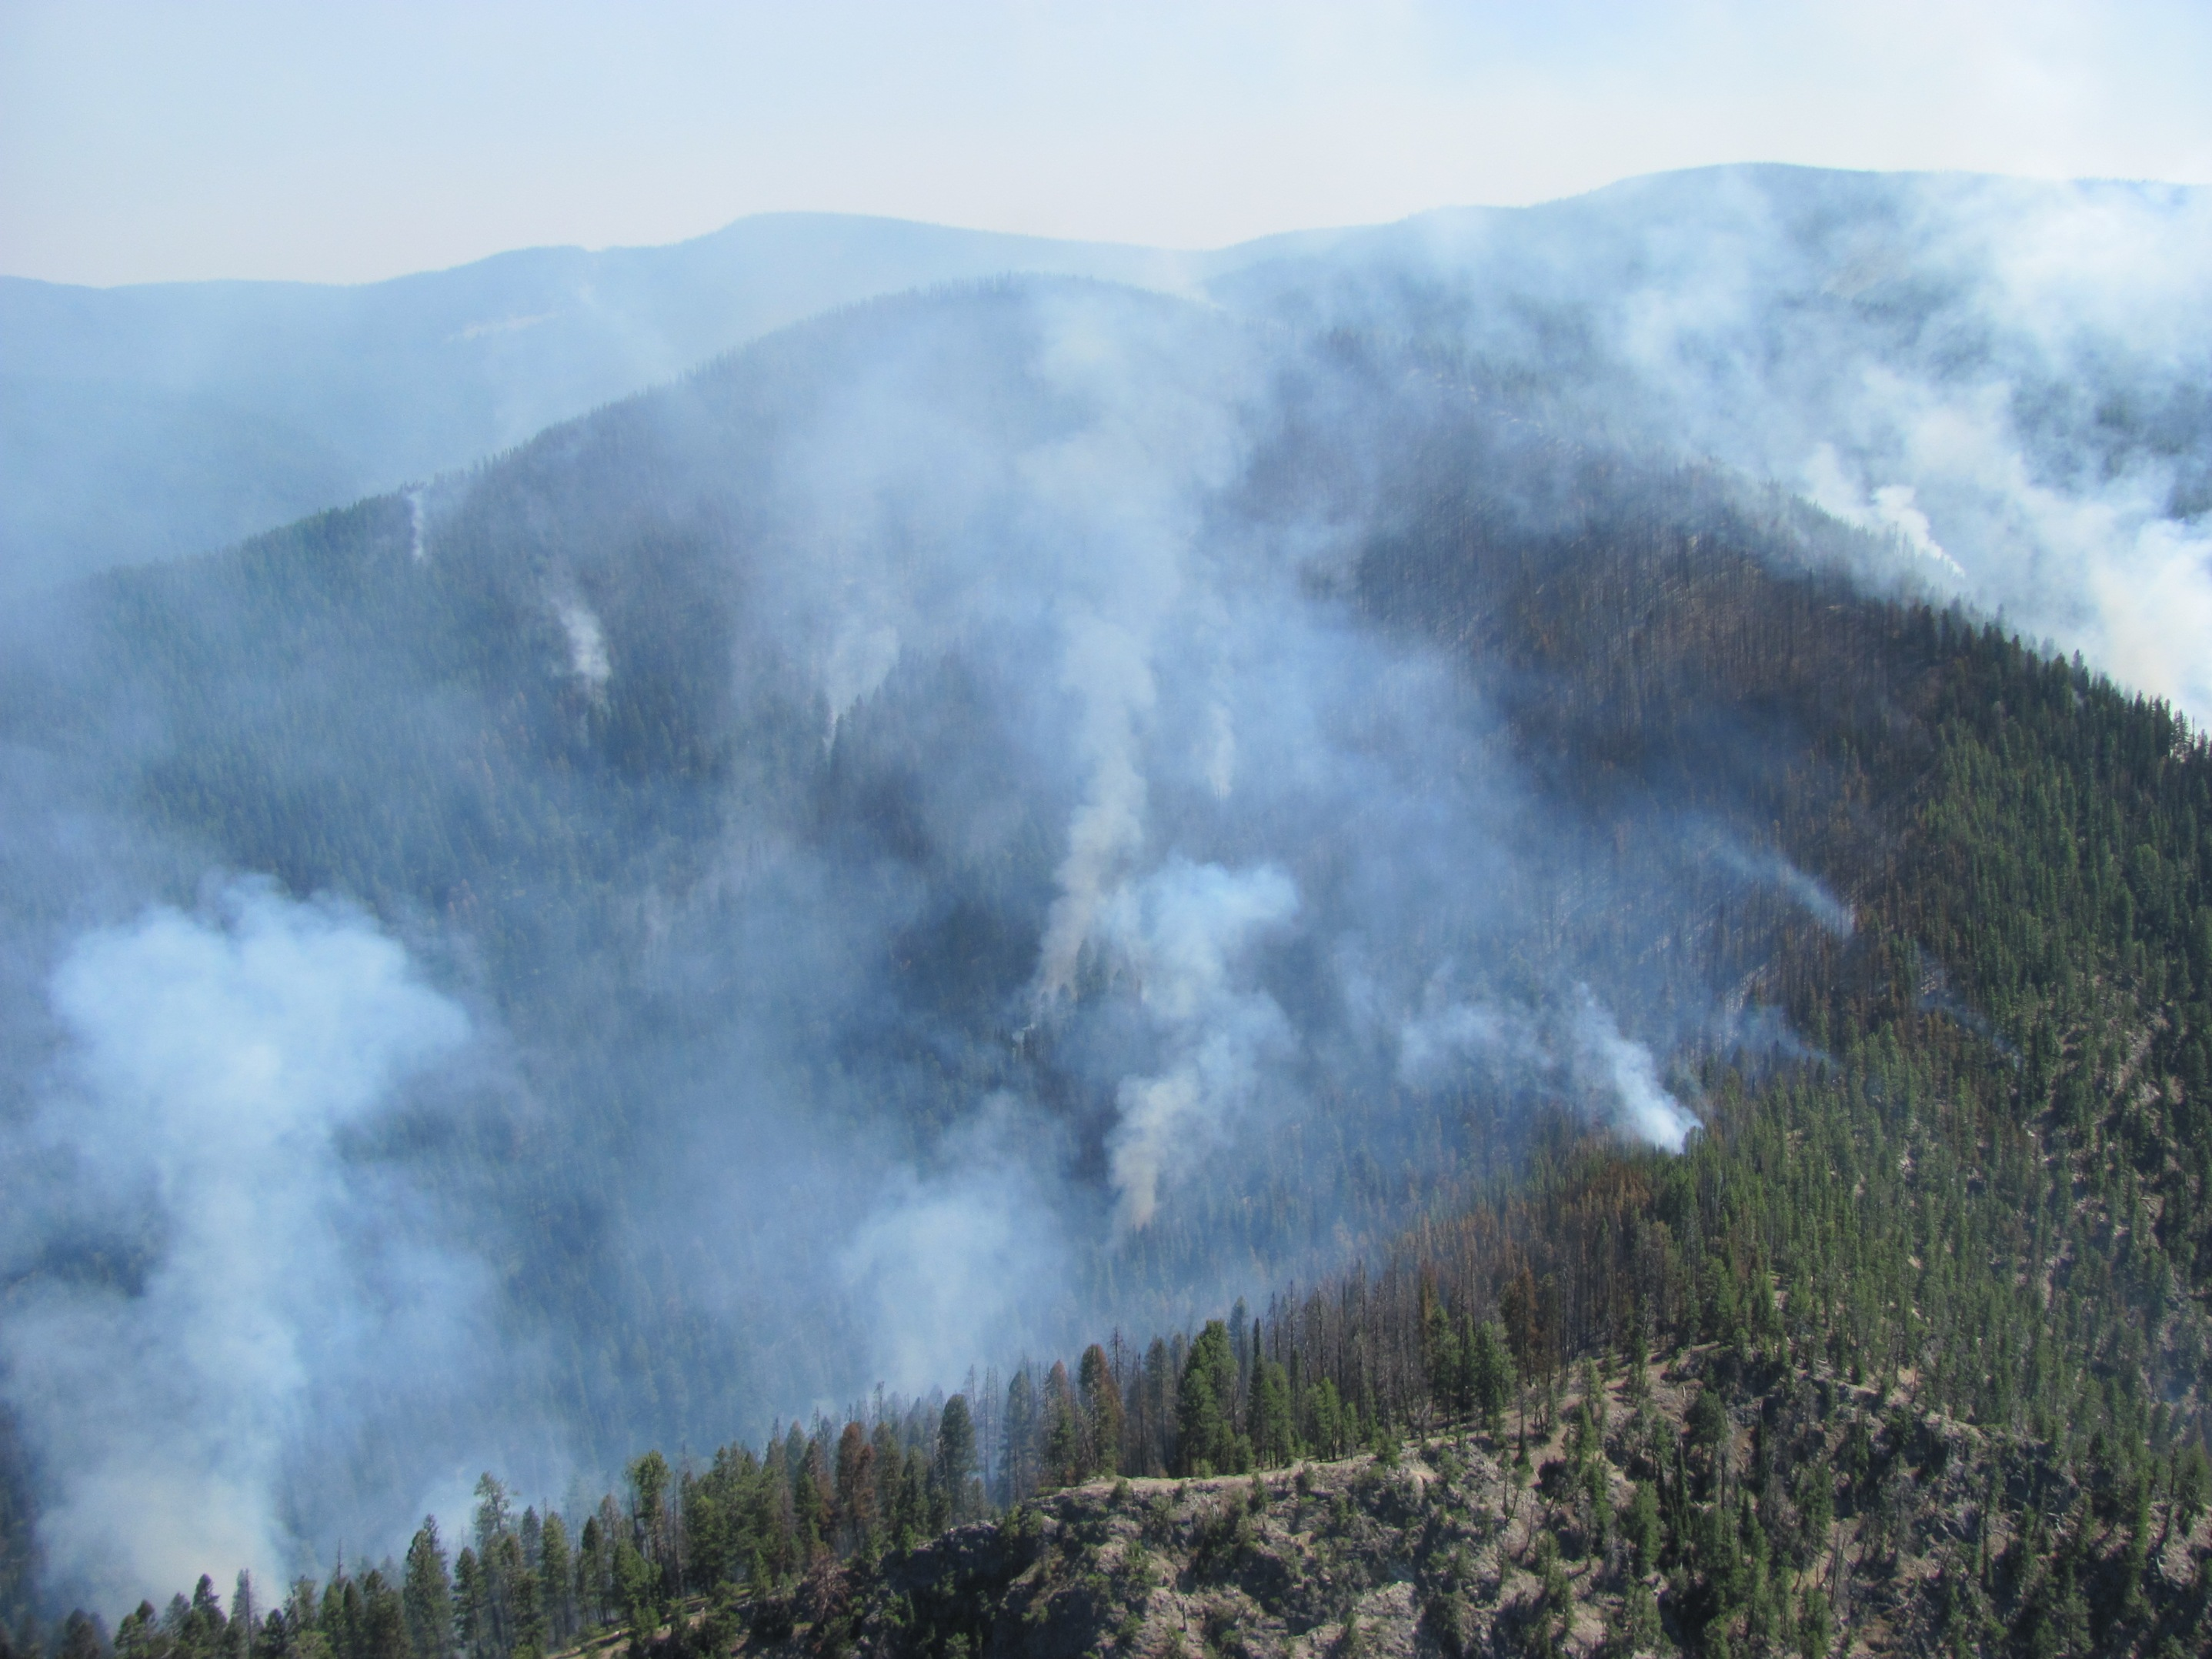 Aerial photo of the Mustang Fire showing the large area it encompasses taken on August 4, 2012.